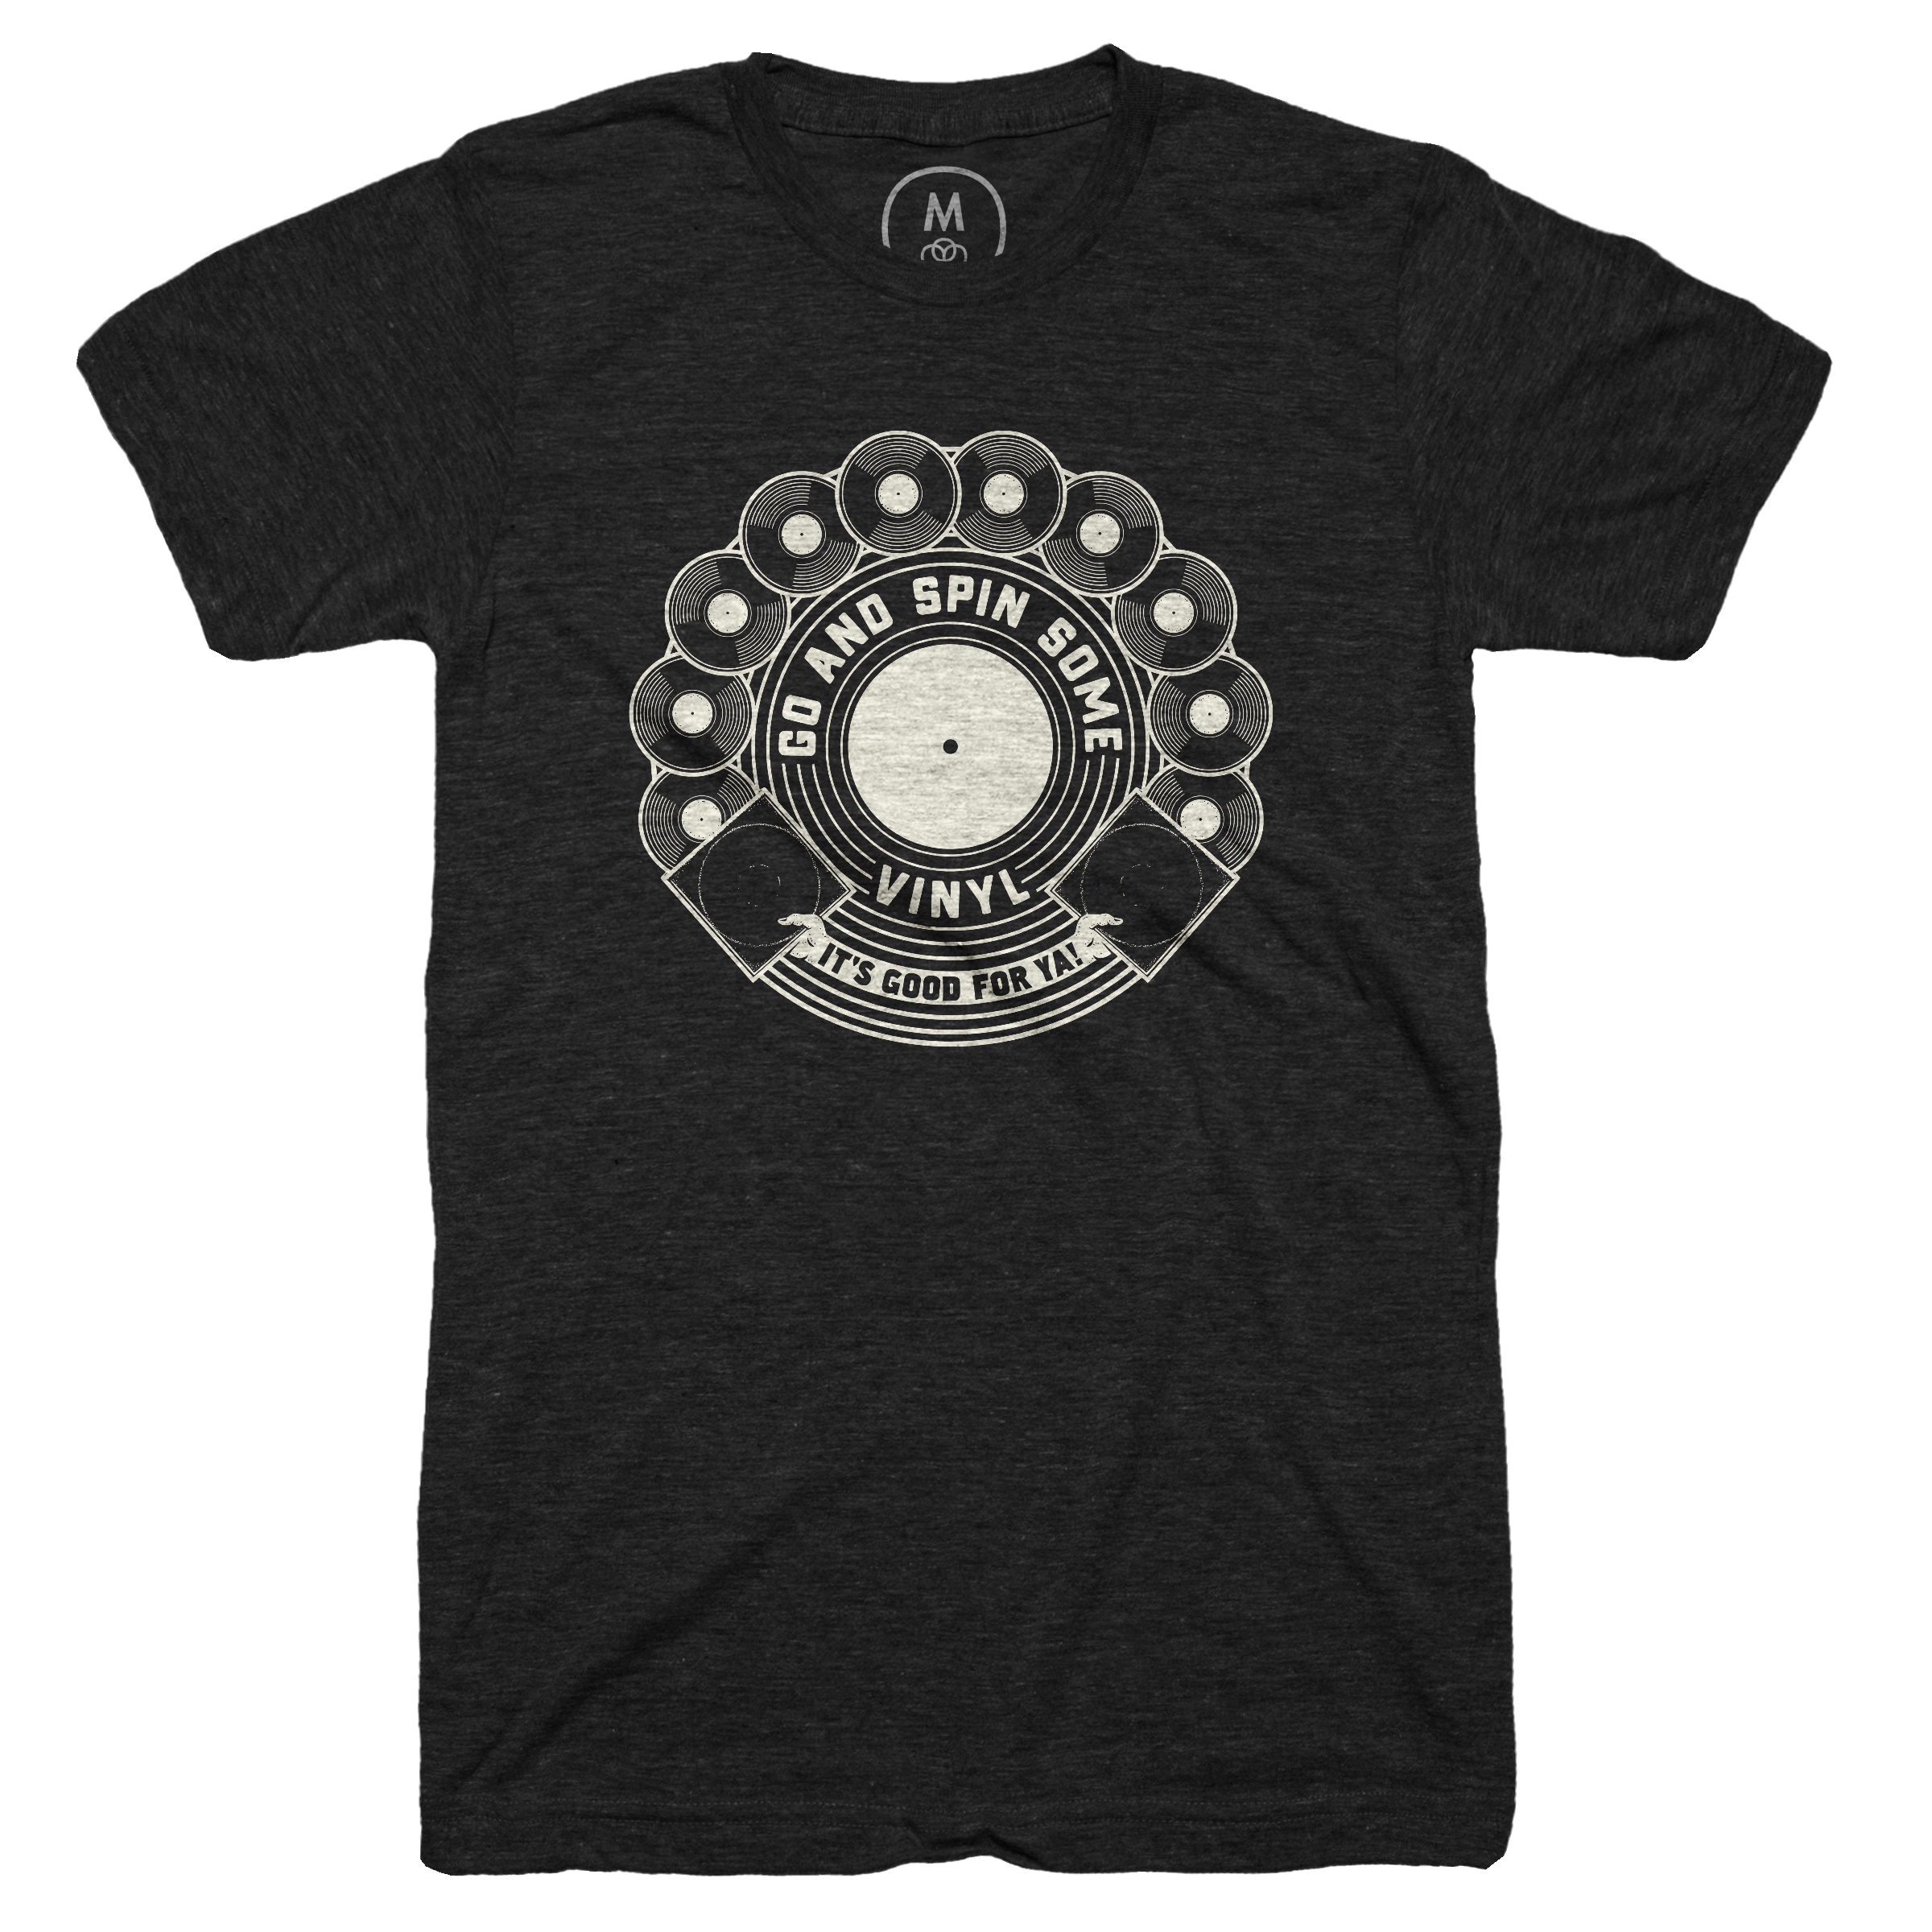 Vinyl's Good For Ya! Vintage Black (Men's)